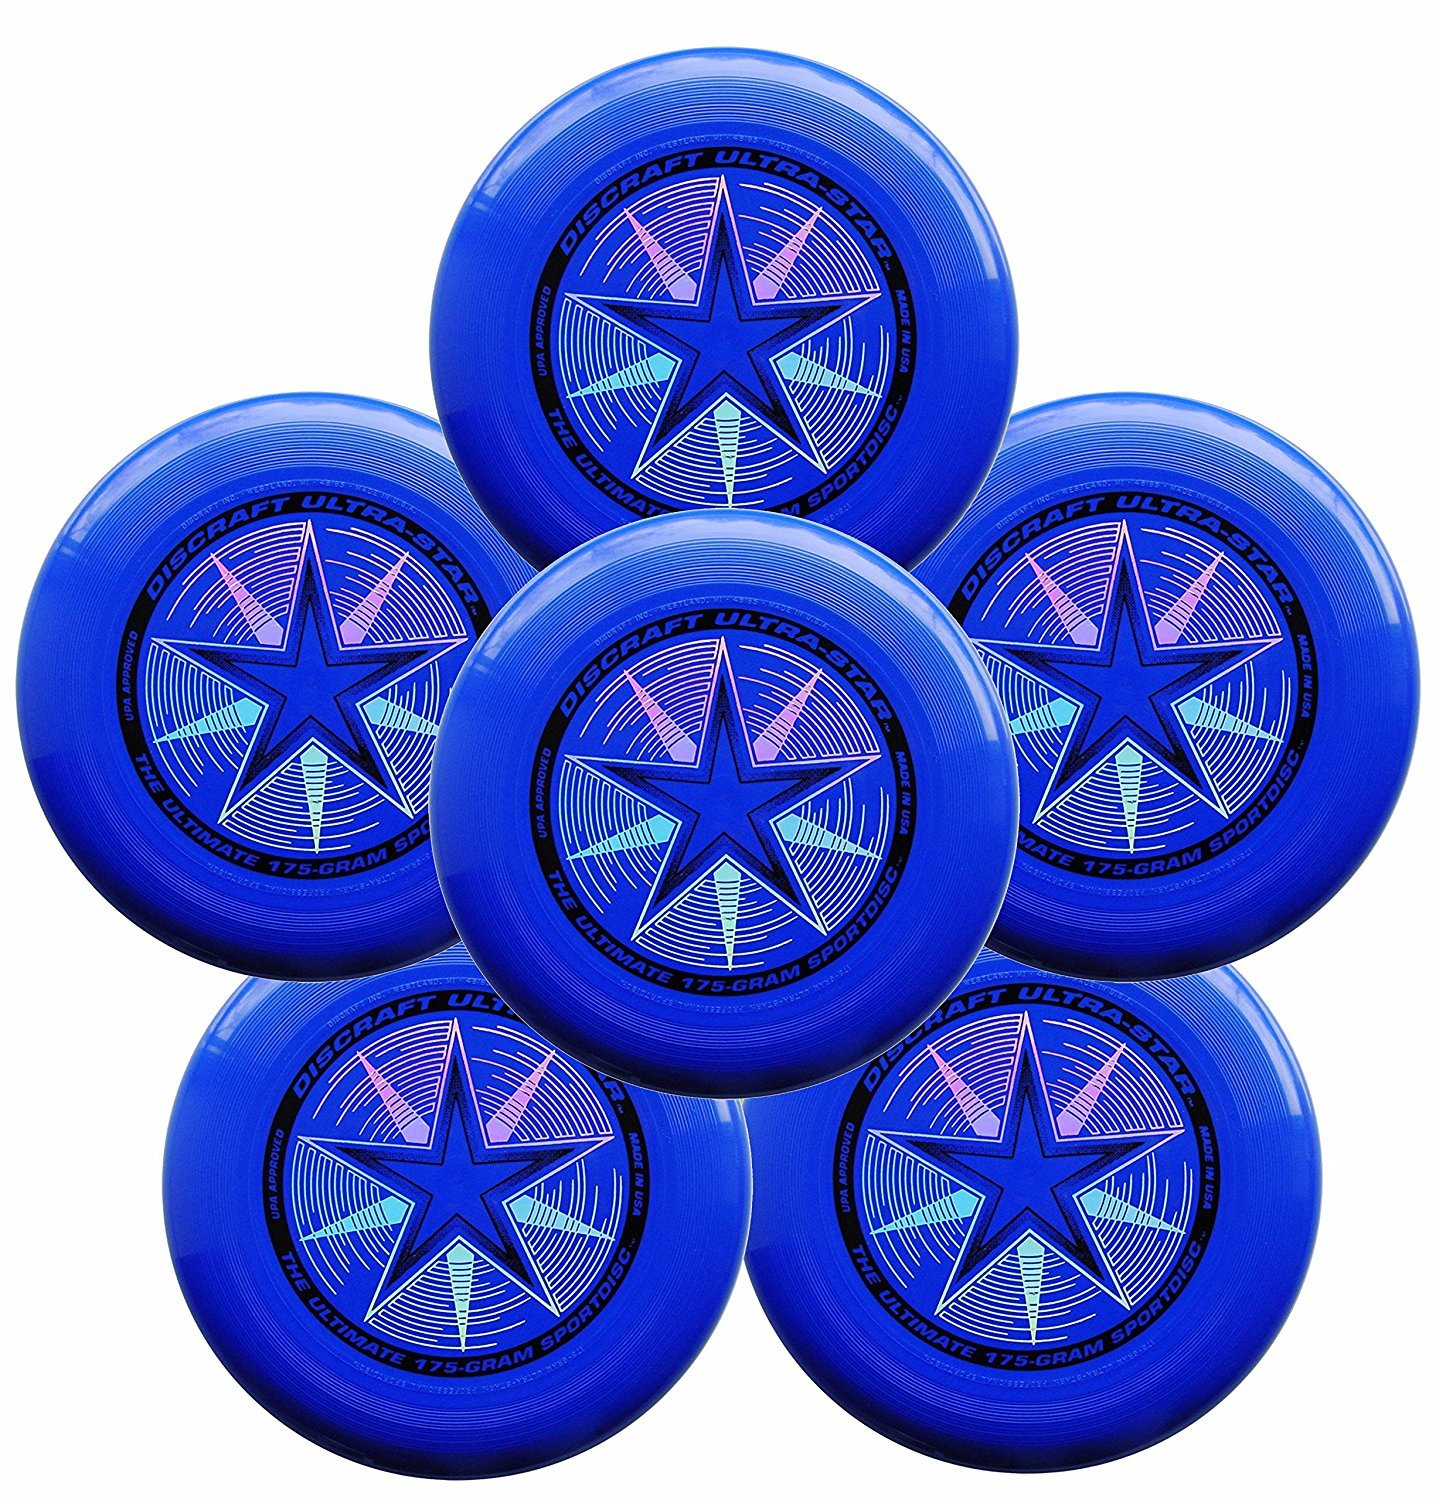 Discraft Ultra-Star 175g Ultimate Frisbee Sport Disc (6 Pack) Royal Blue by Discraft